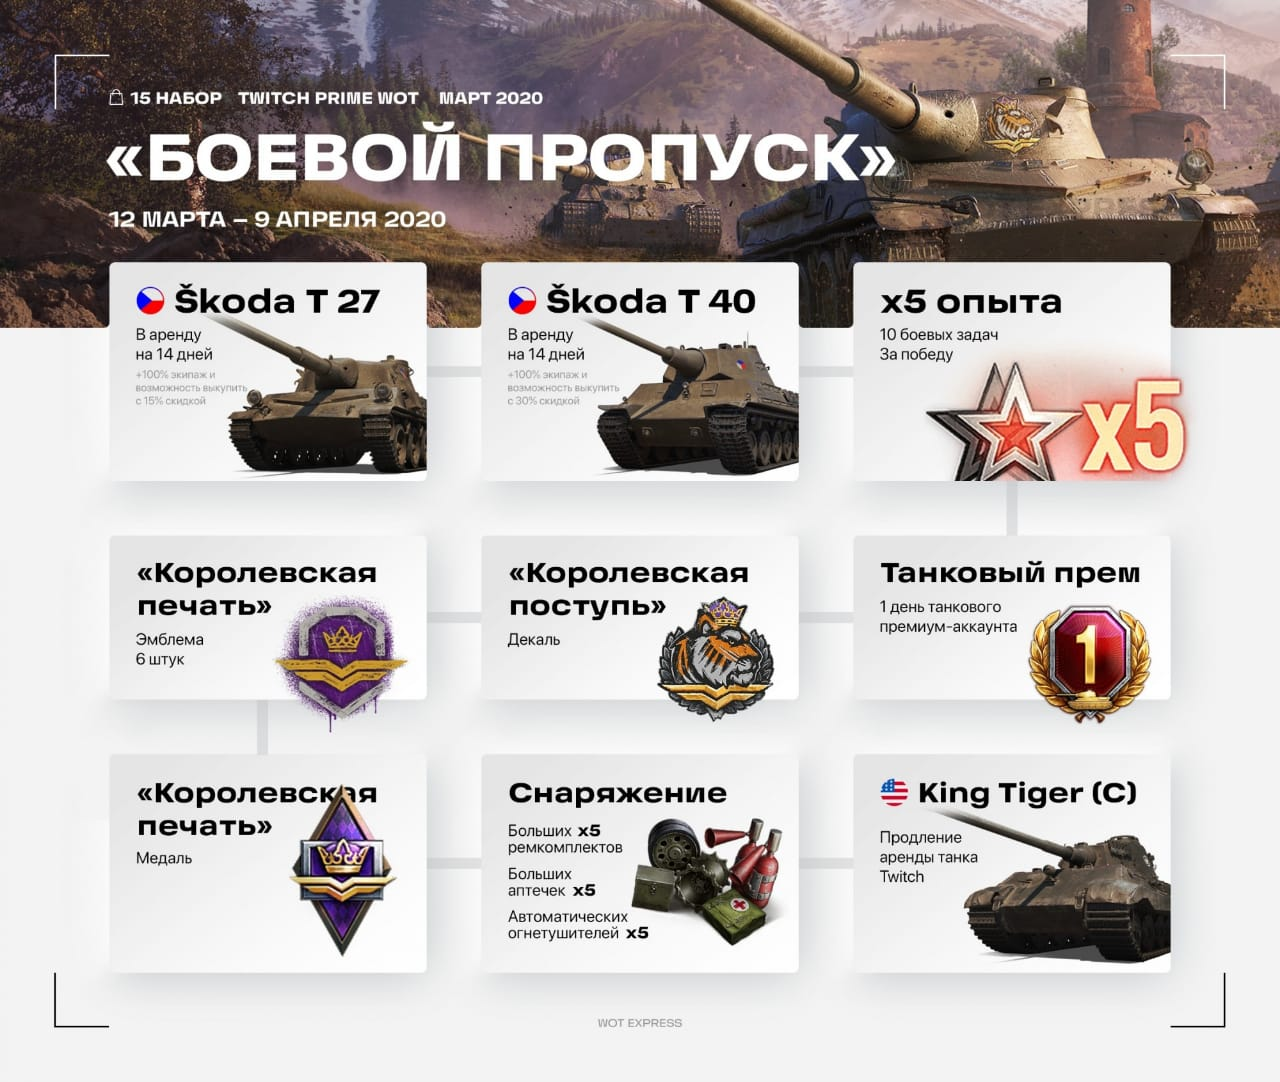 twitch prime world of tanks звездная ночь